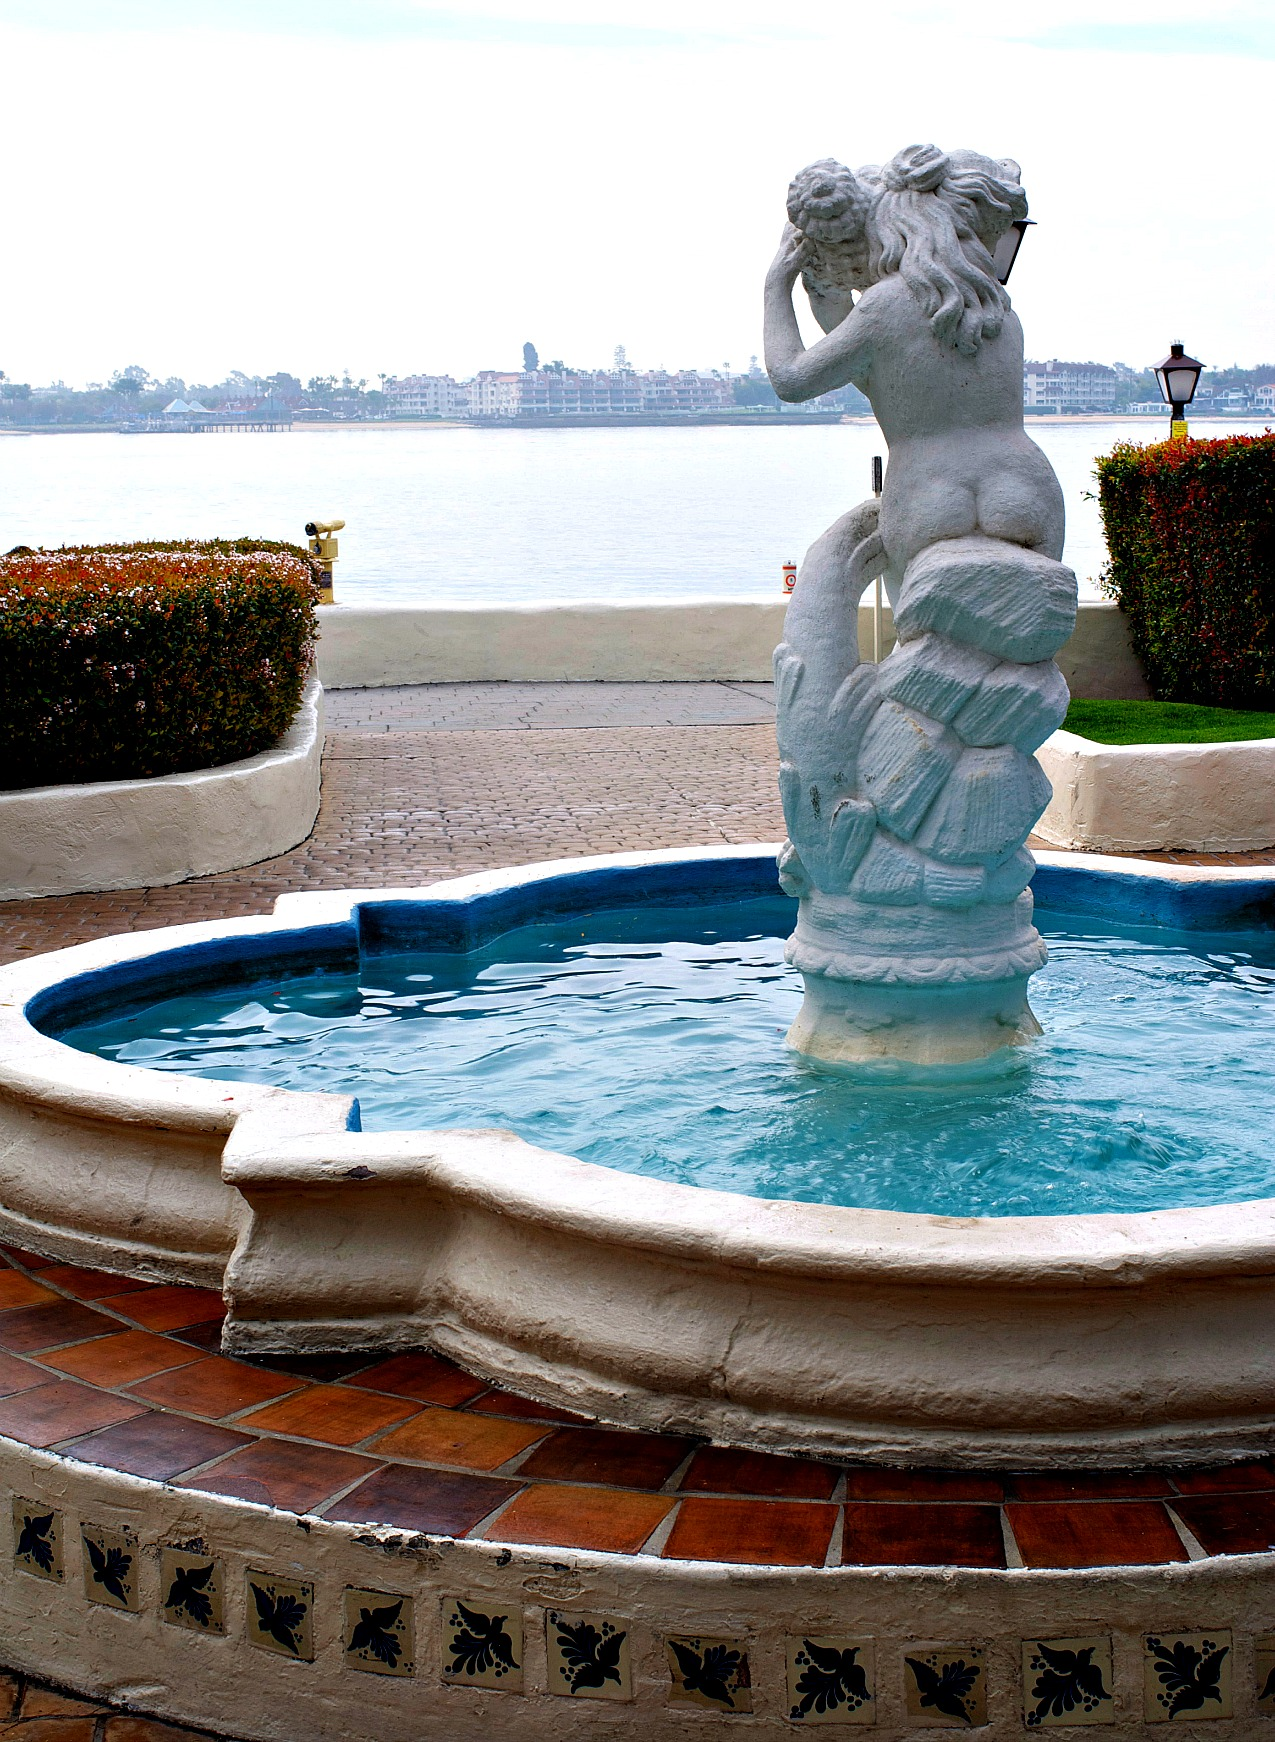 Seaport Village, San Diego. lady with shell fountain